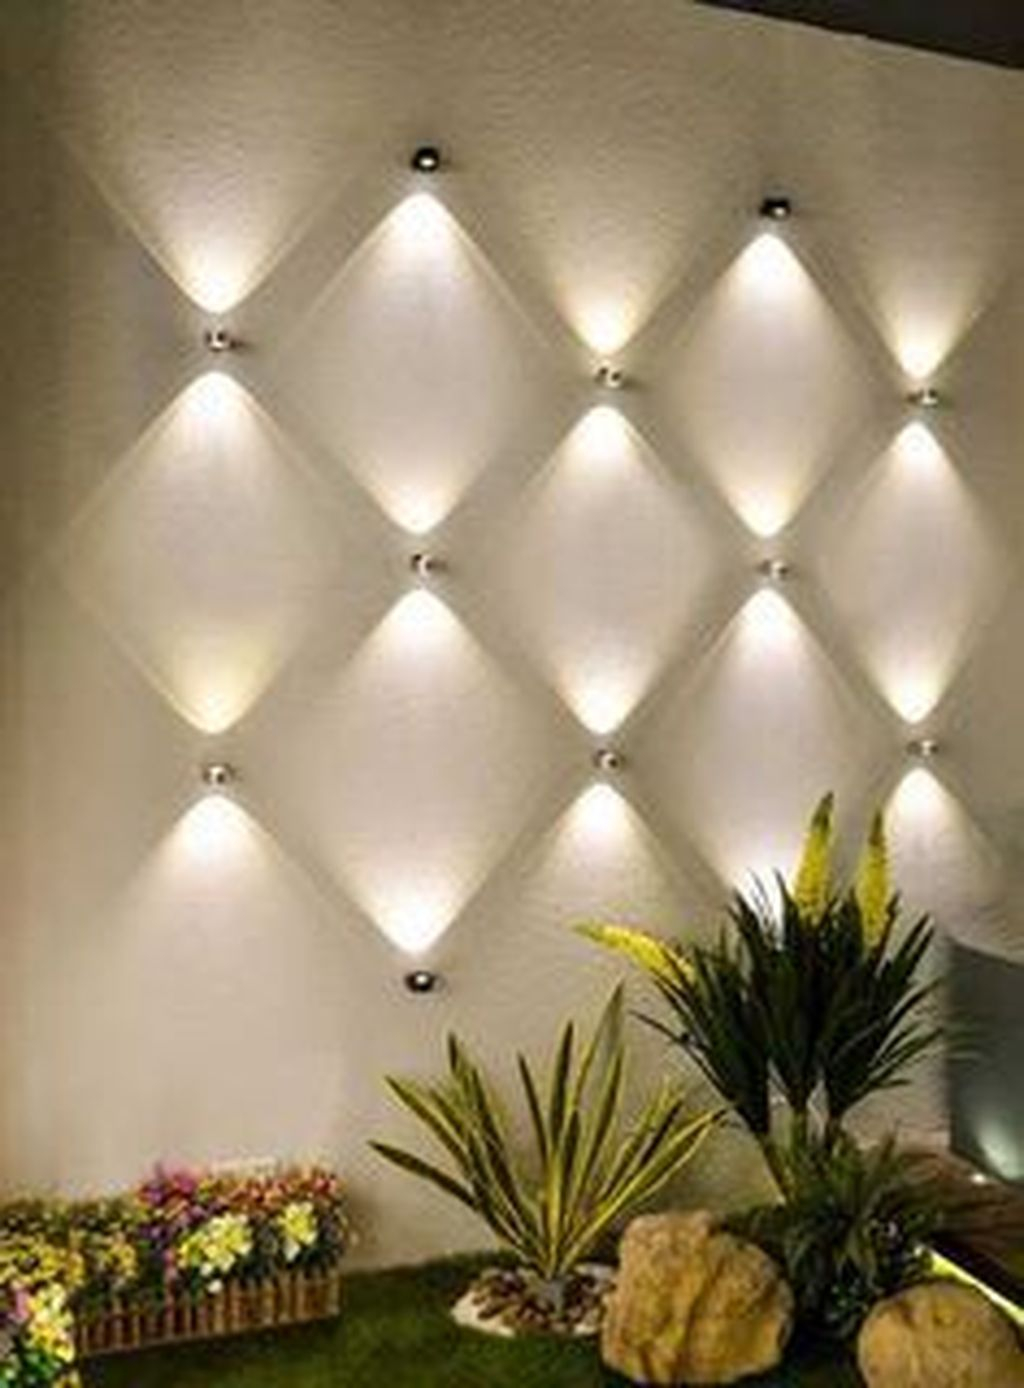 Decorative Lighting Ideas On The Walls Of Your Room21